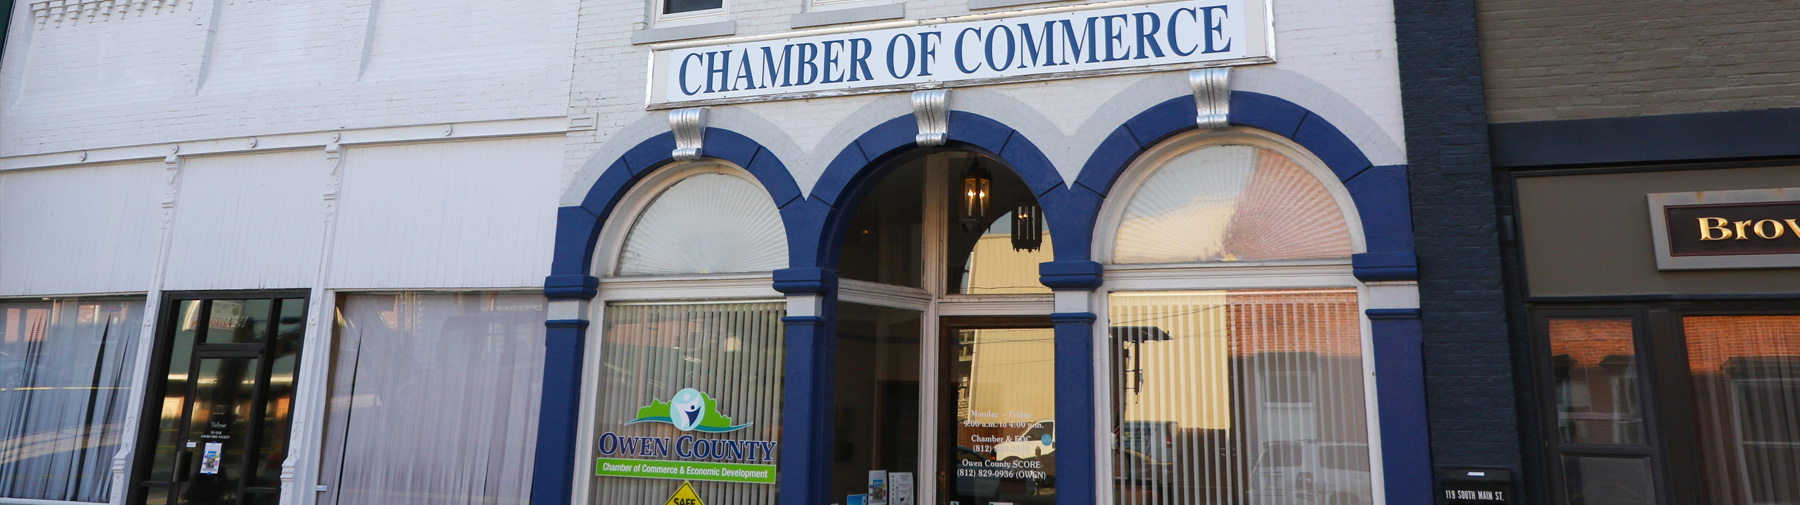 local Chamber of Commerce building